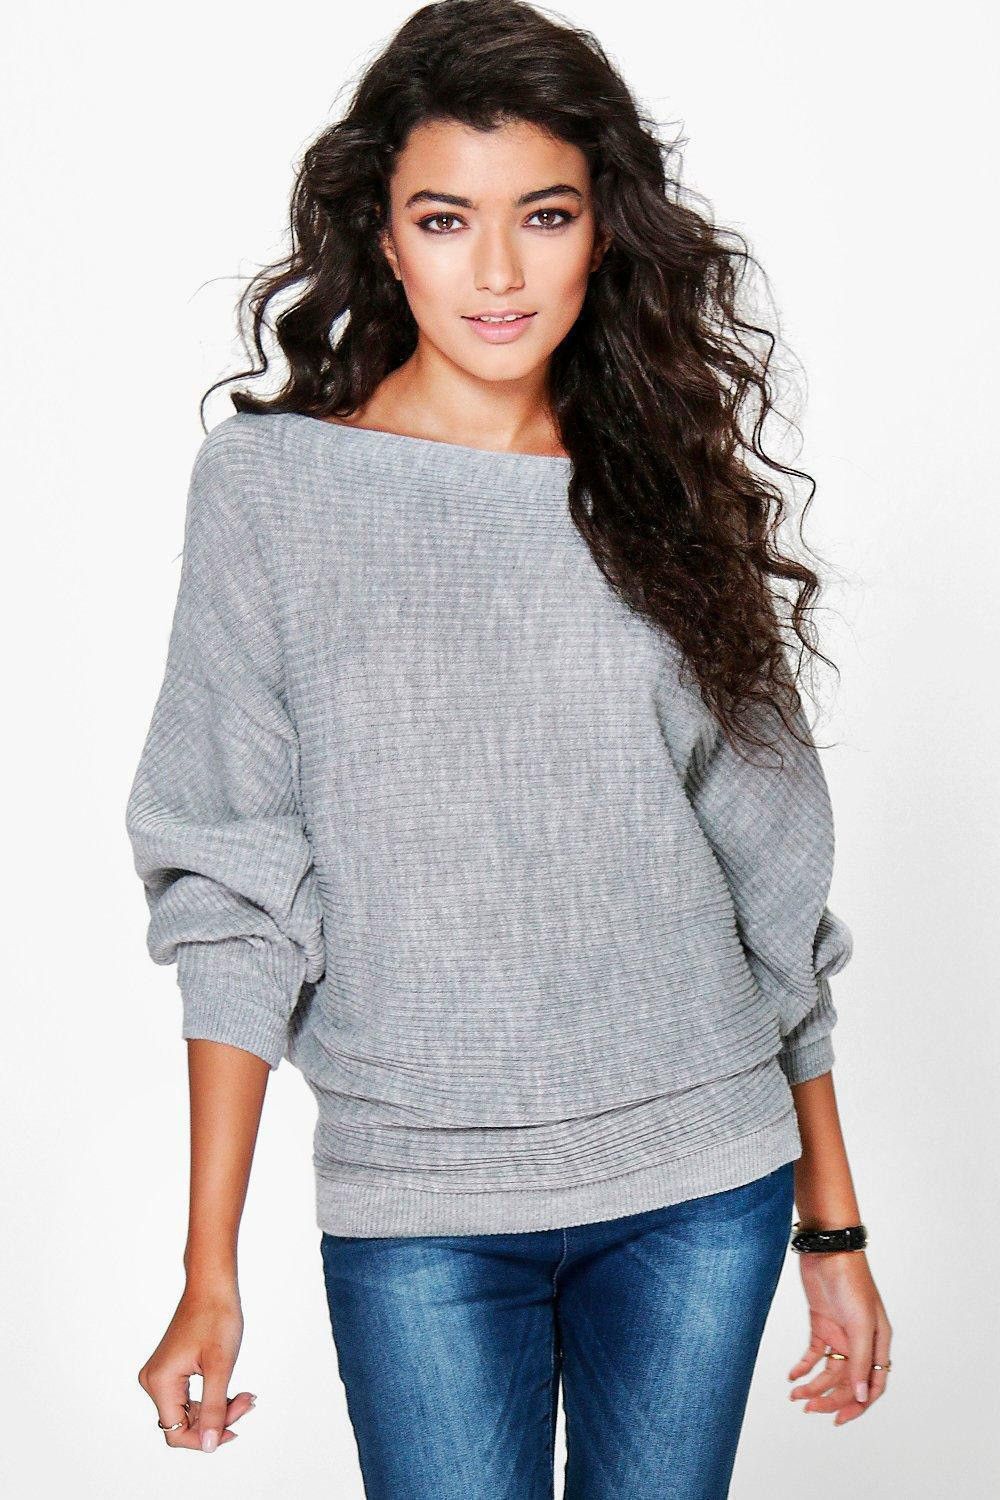 Women Pullover Sweater Solid Boat Neck Bat Sleeve Knit Tops